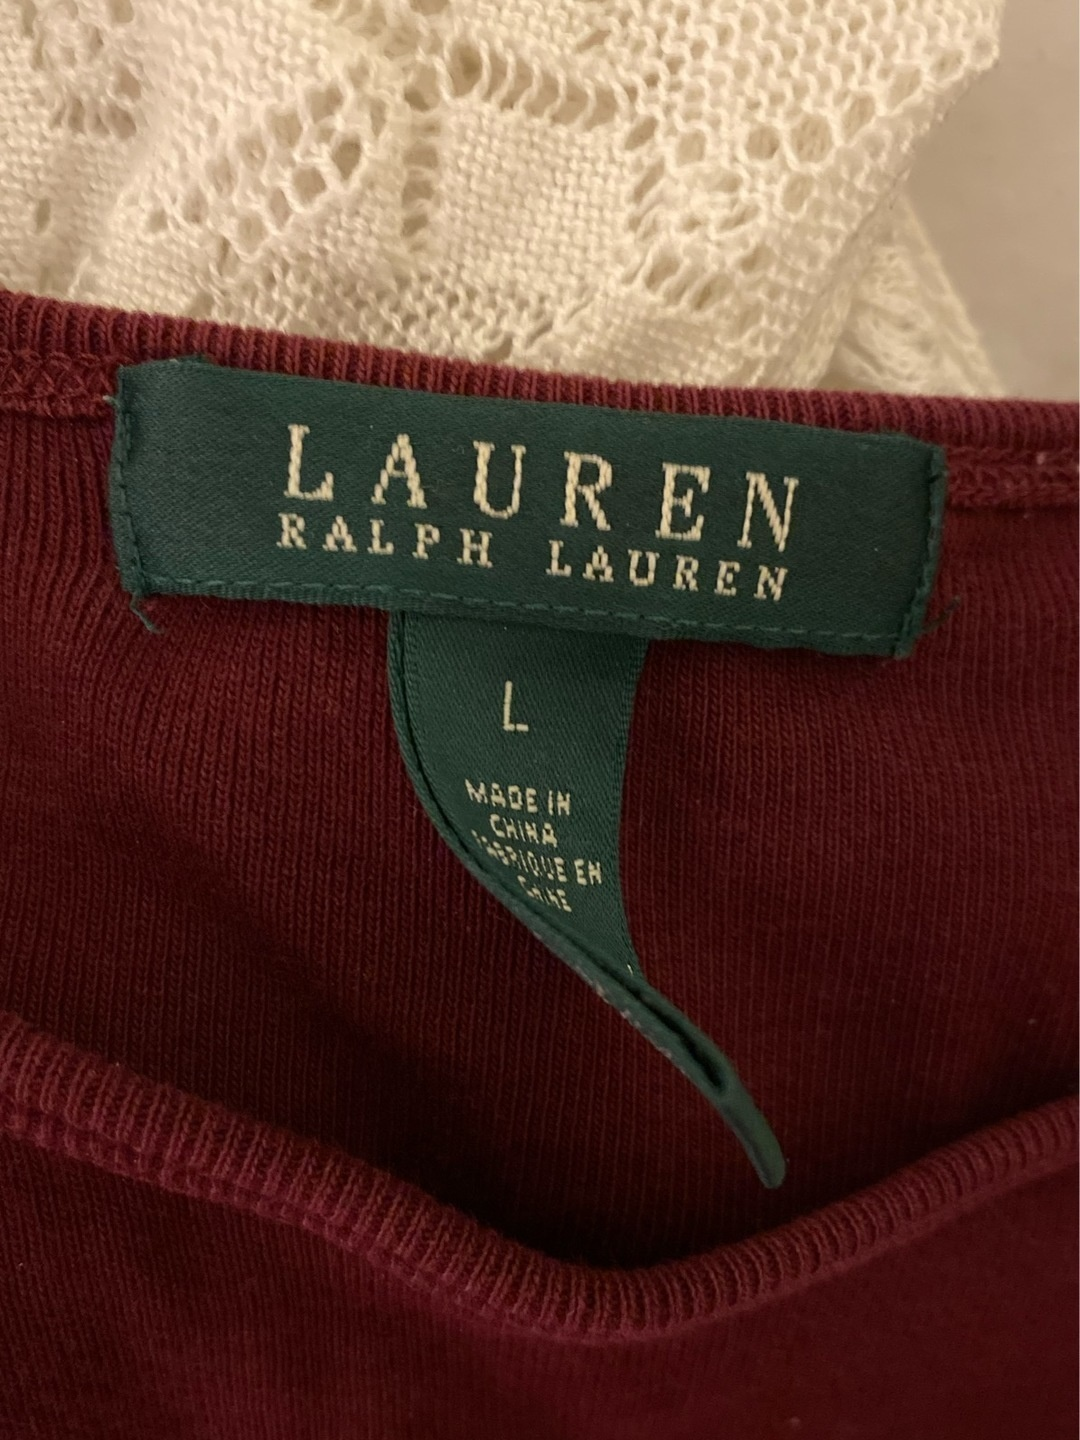 Women's blouses & shirts - RALPH LAUREN photo 3